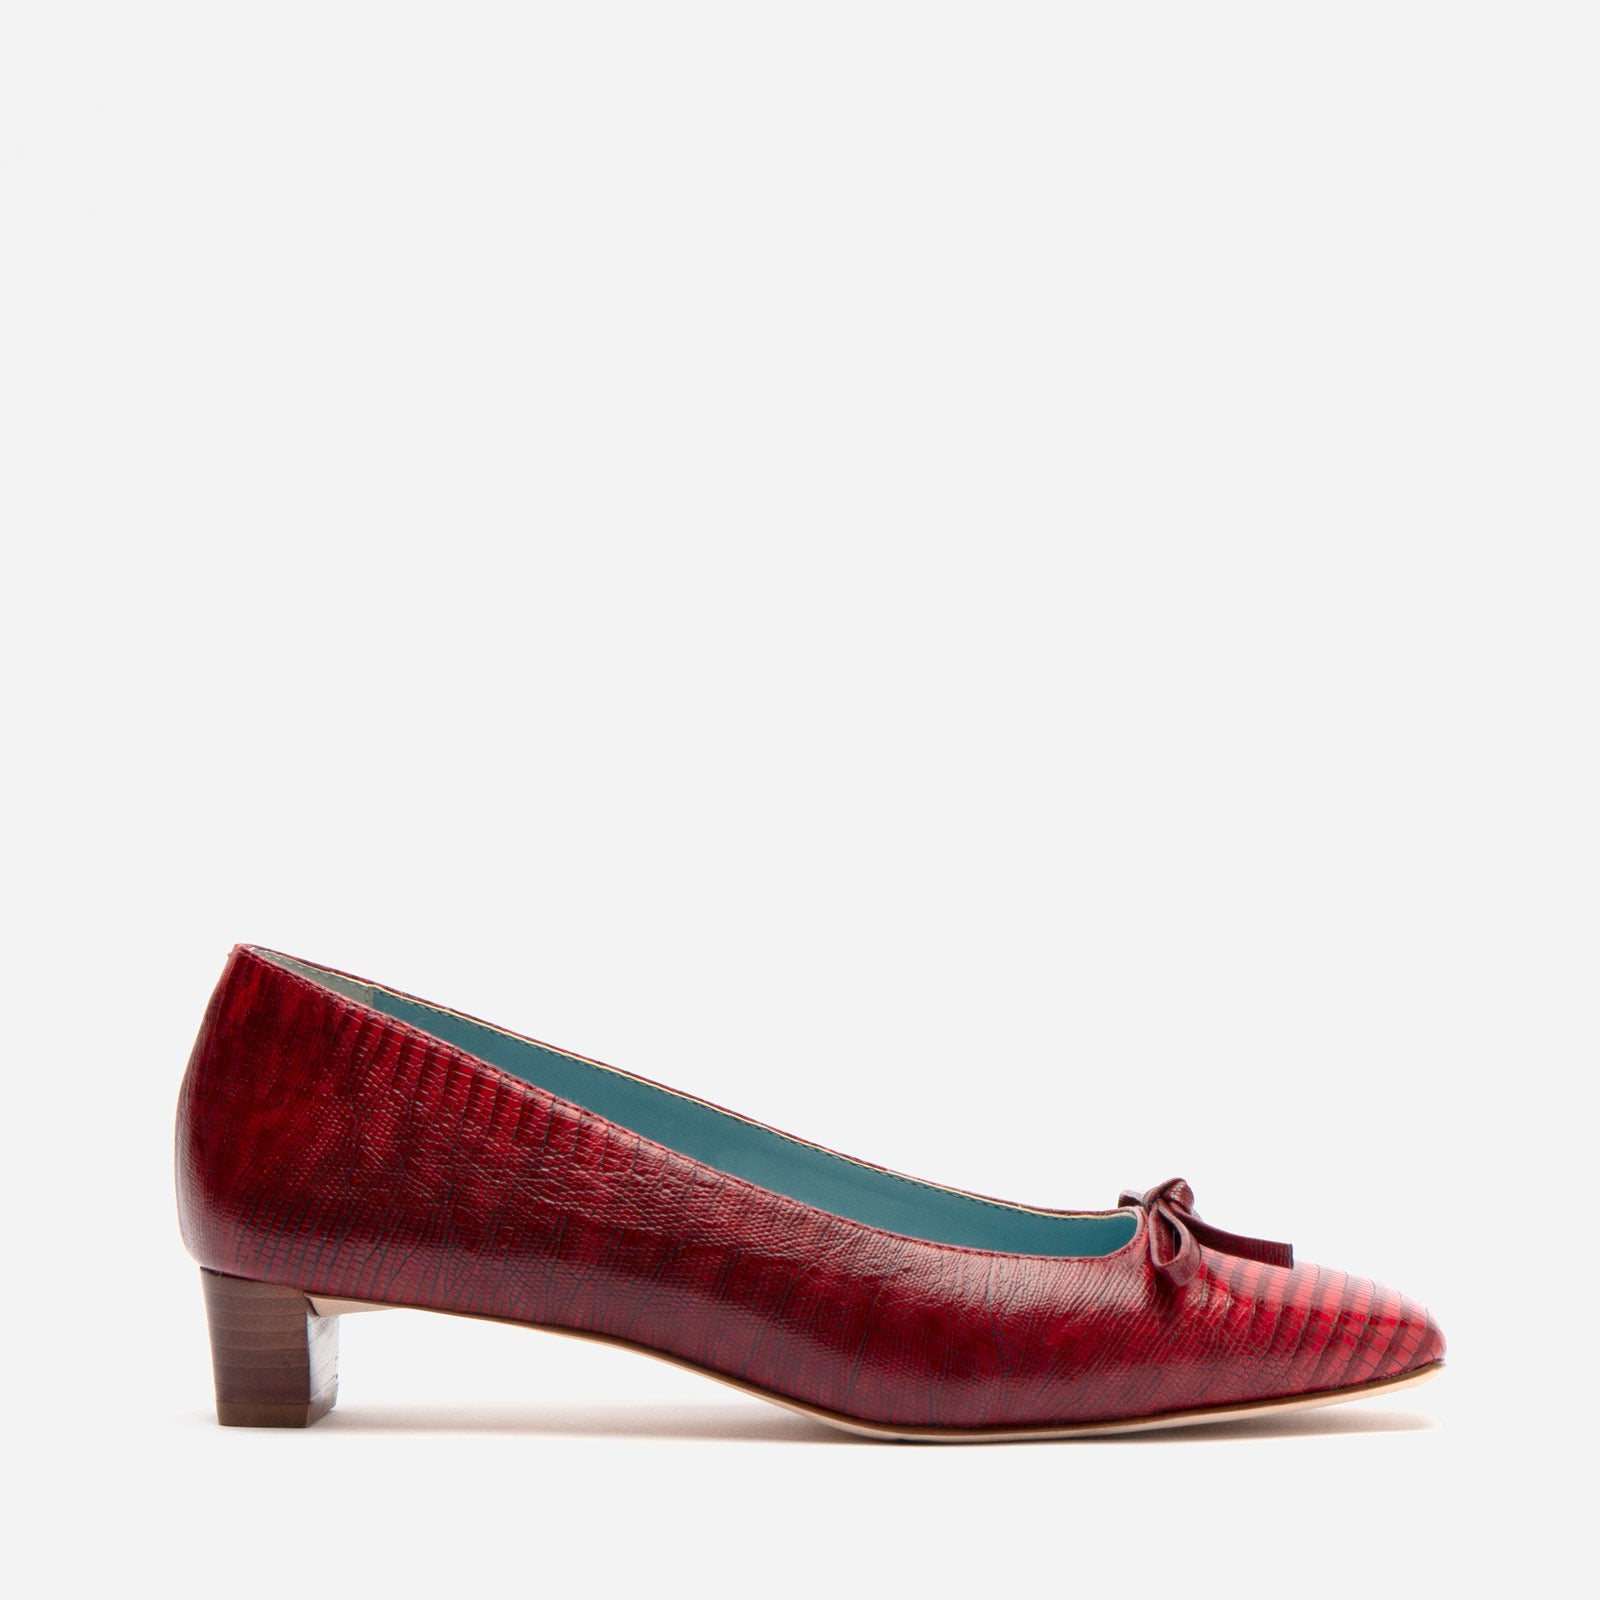 Mary Mini Block Heel Lizard Embossed Red